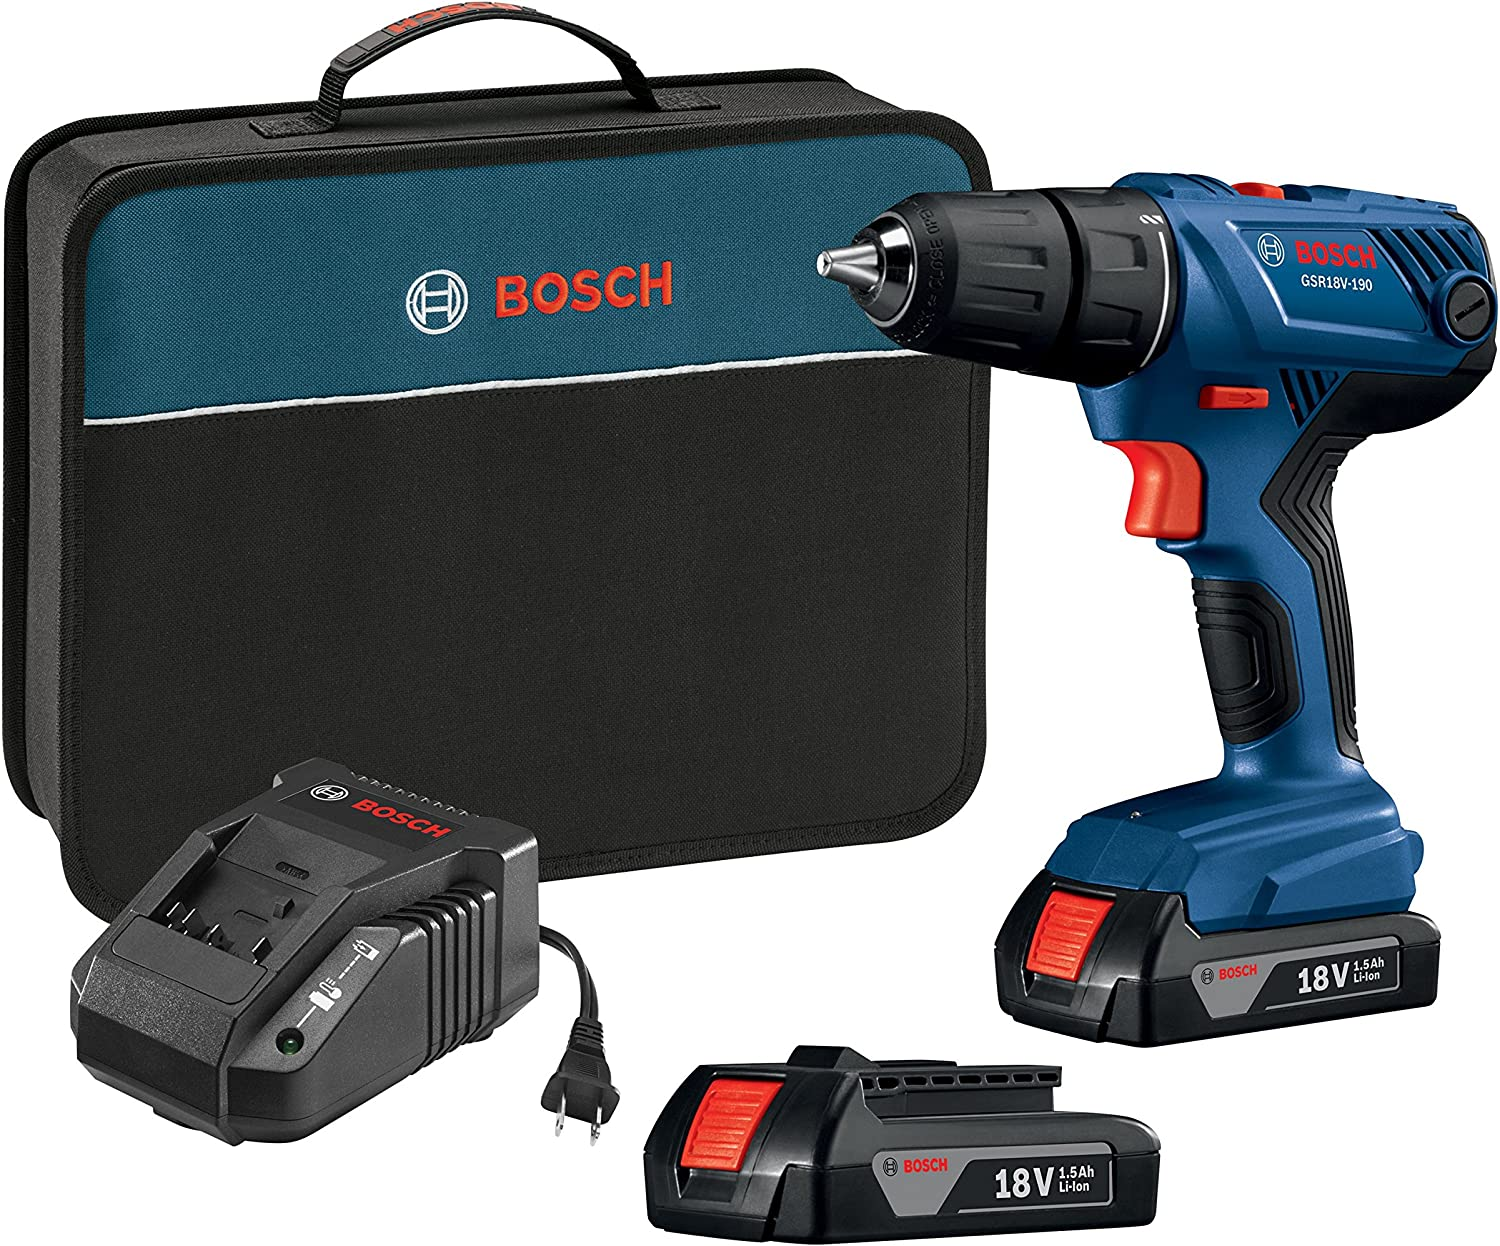 Bosch Compact Drill Driver Kit